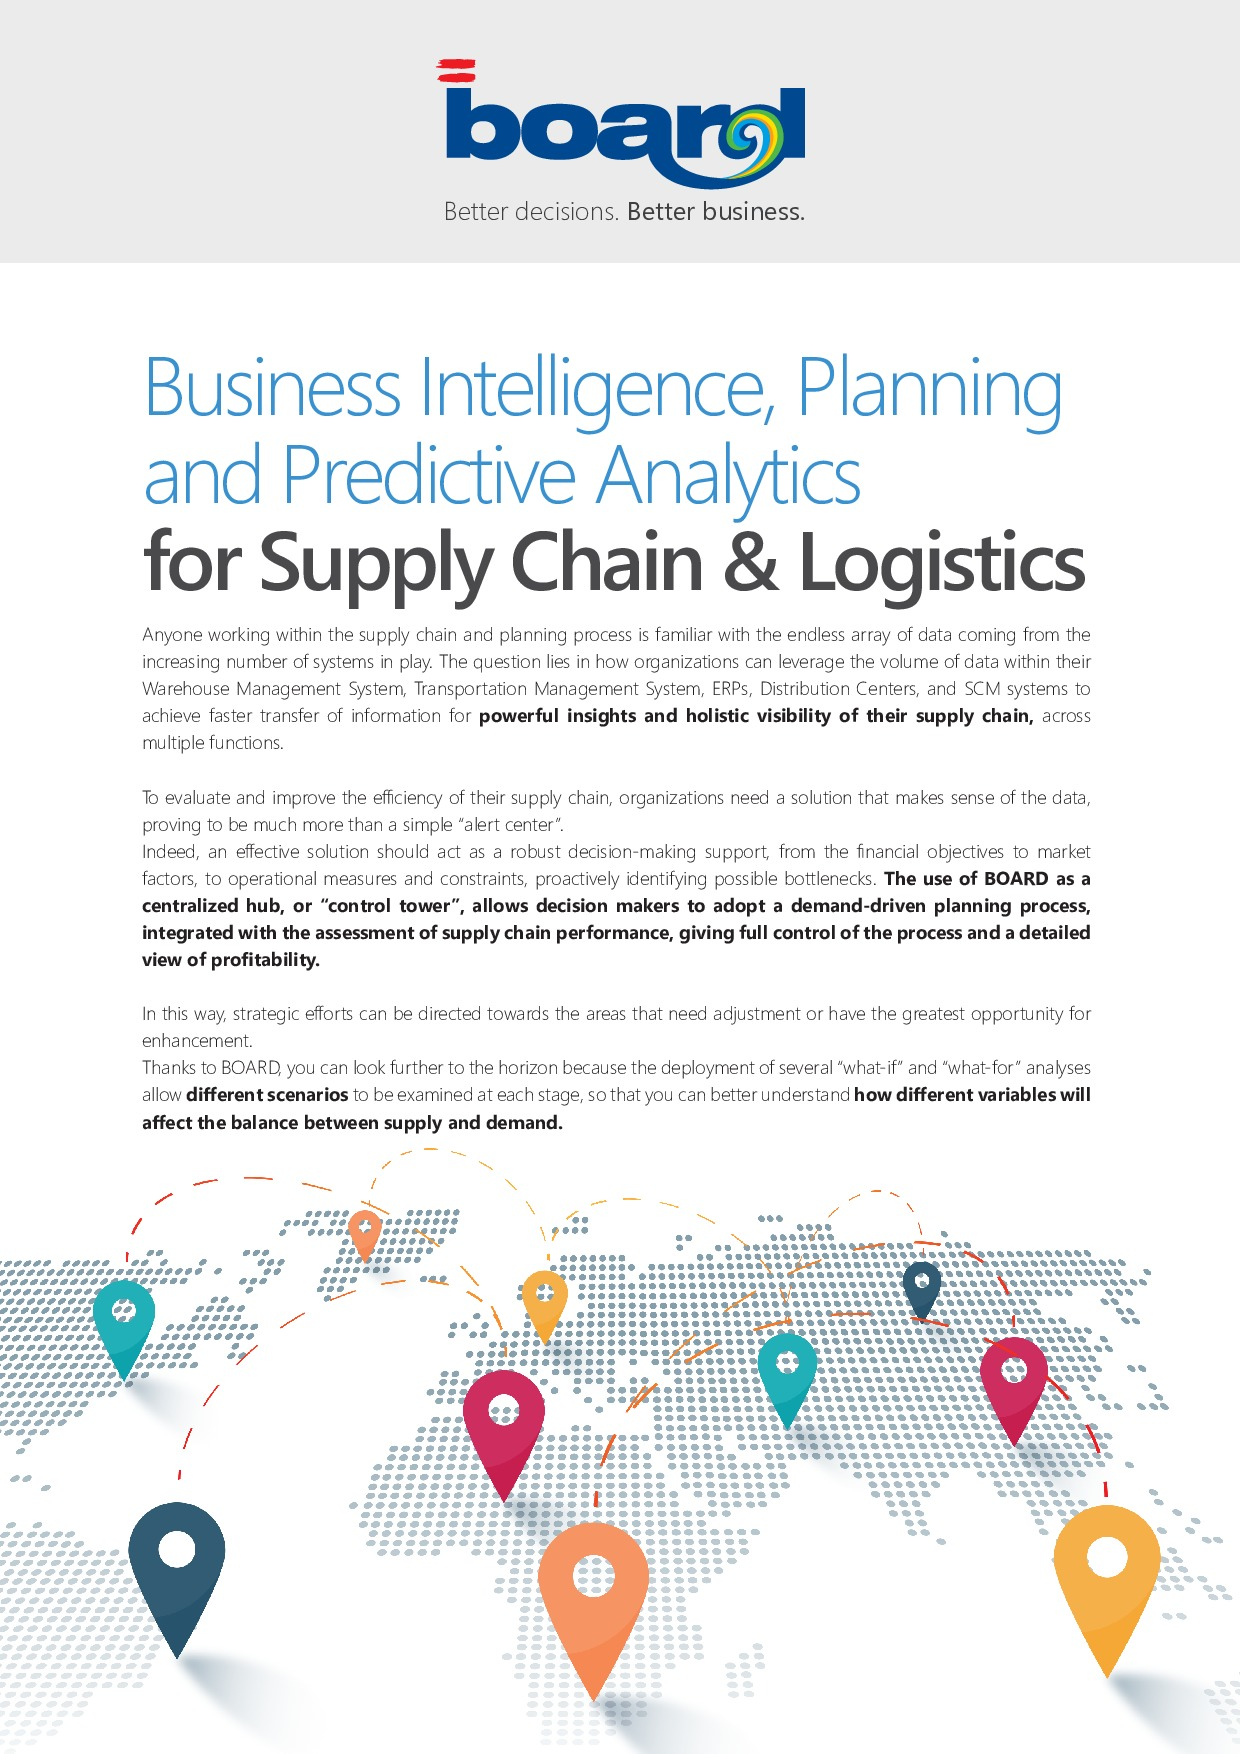 Business Intelligence, Planning and Predictive Analytics for Supply Chain & Logistics | Page 1